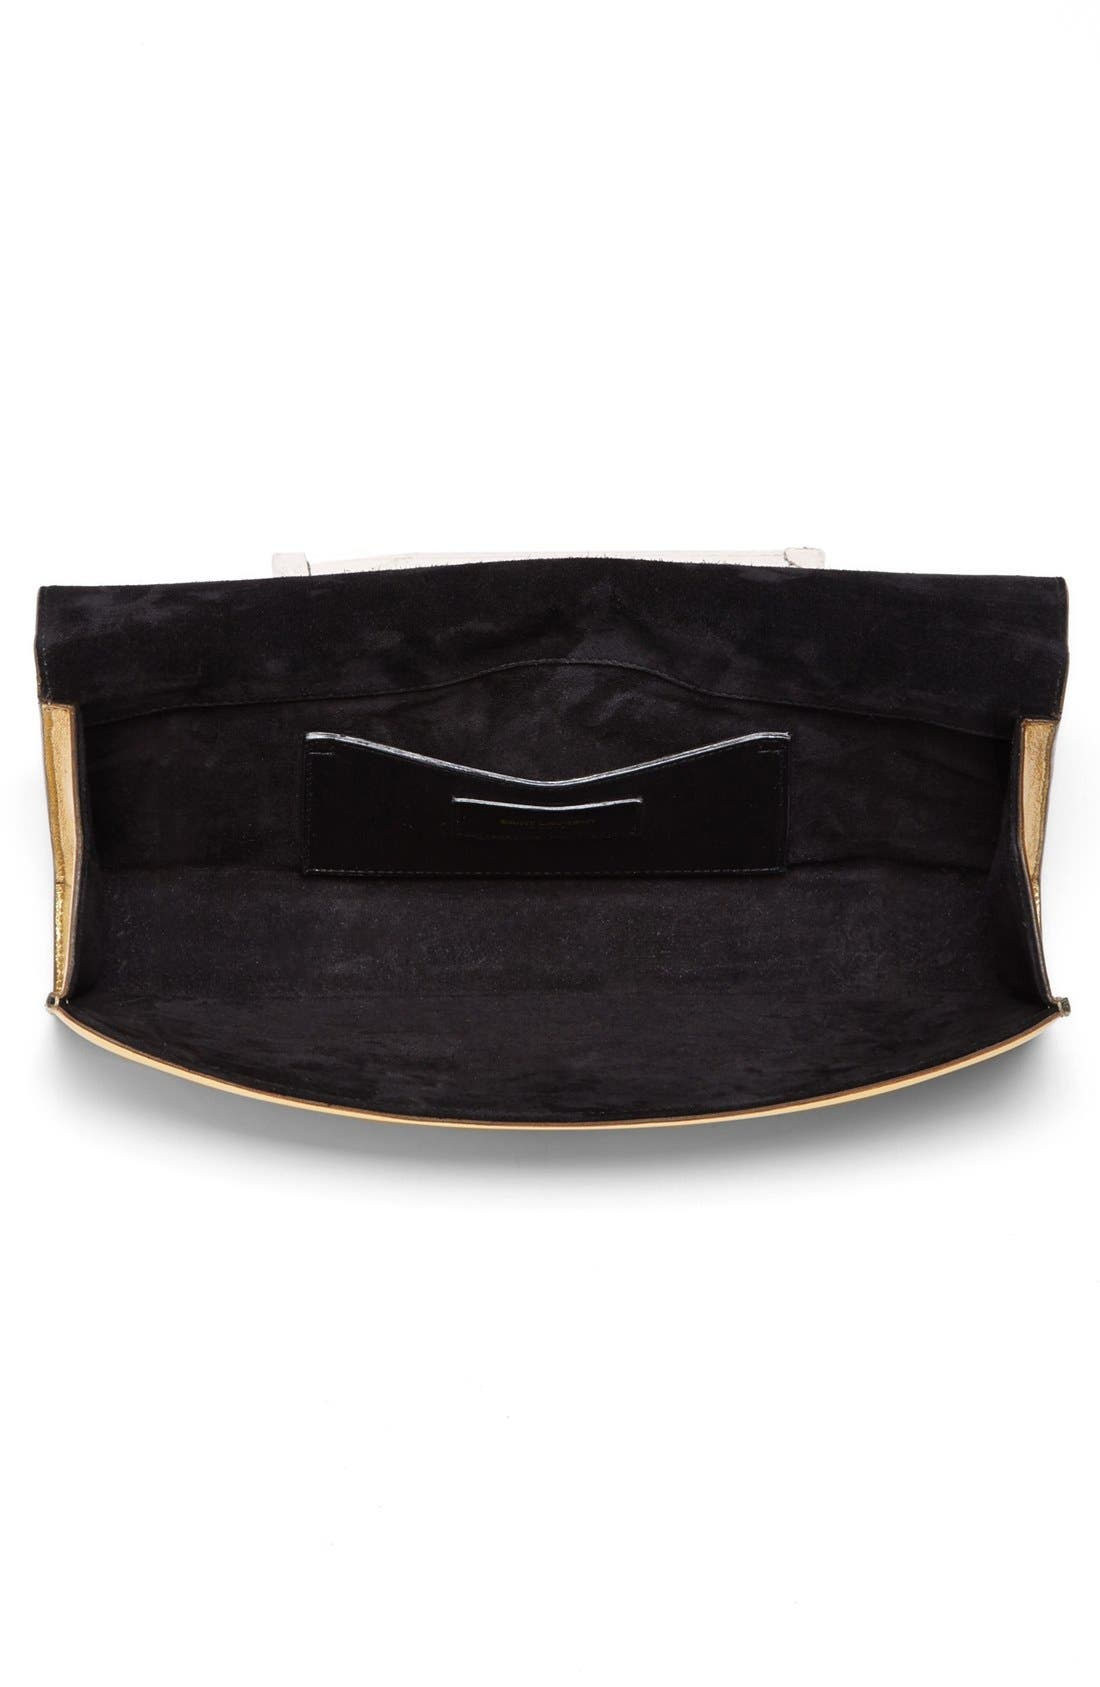 'Cassandre' Leather Clutch,                             Alternate thumbnail 3, color,                             710